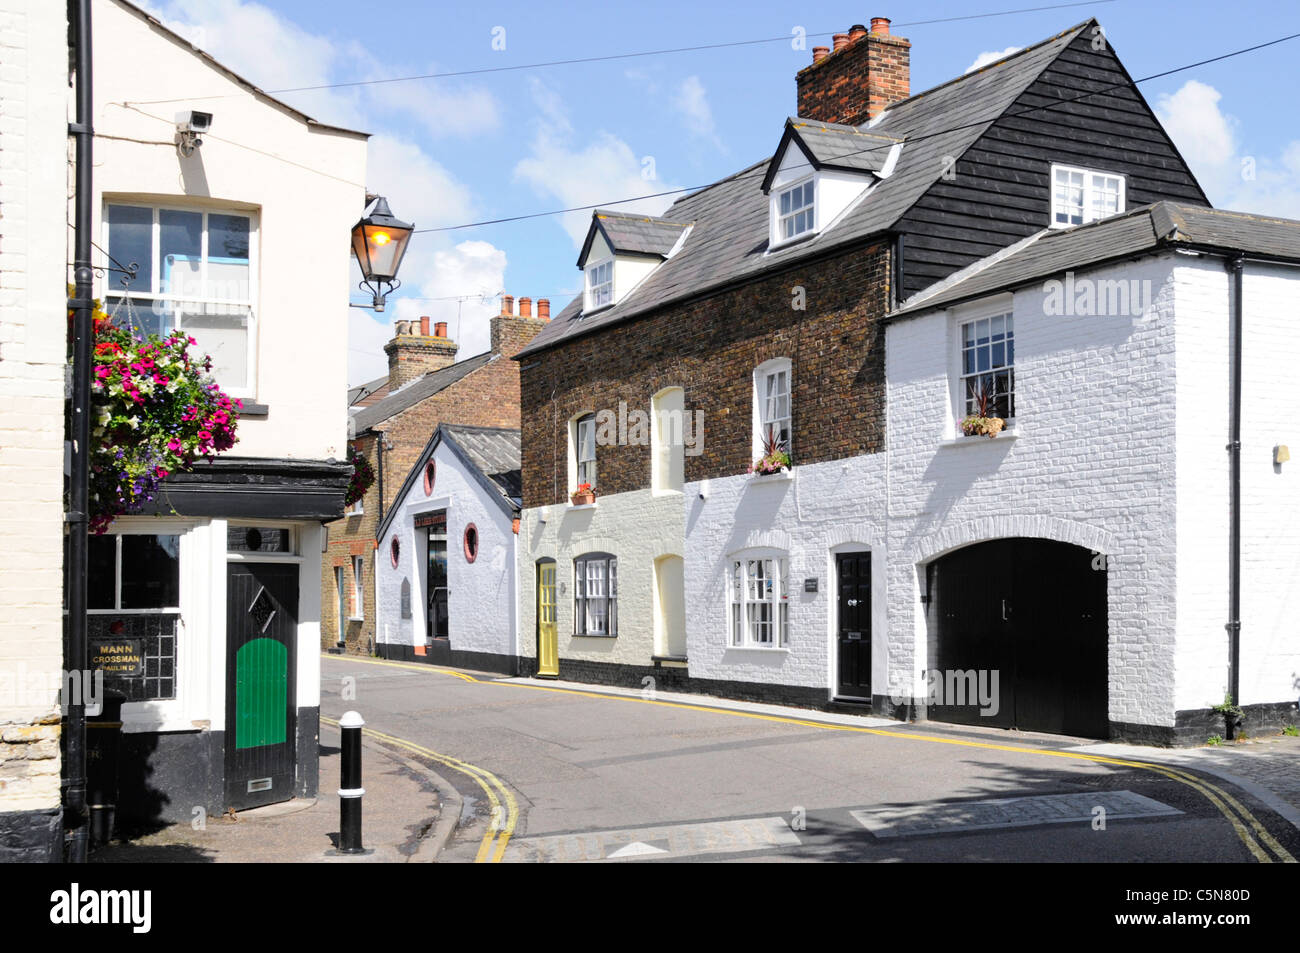 Cottages with front door opening onto narrow road with no pavement in High Street Old Leigh on Sea Essex England - Stock Image